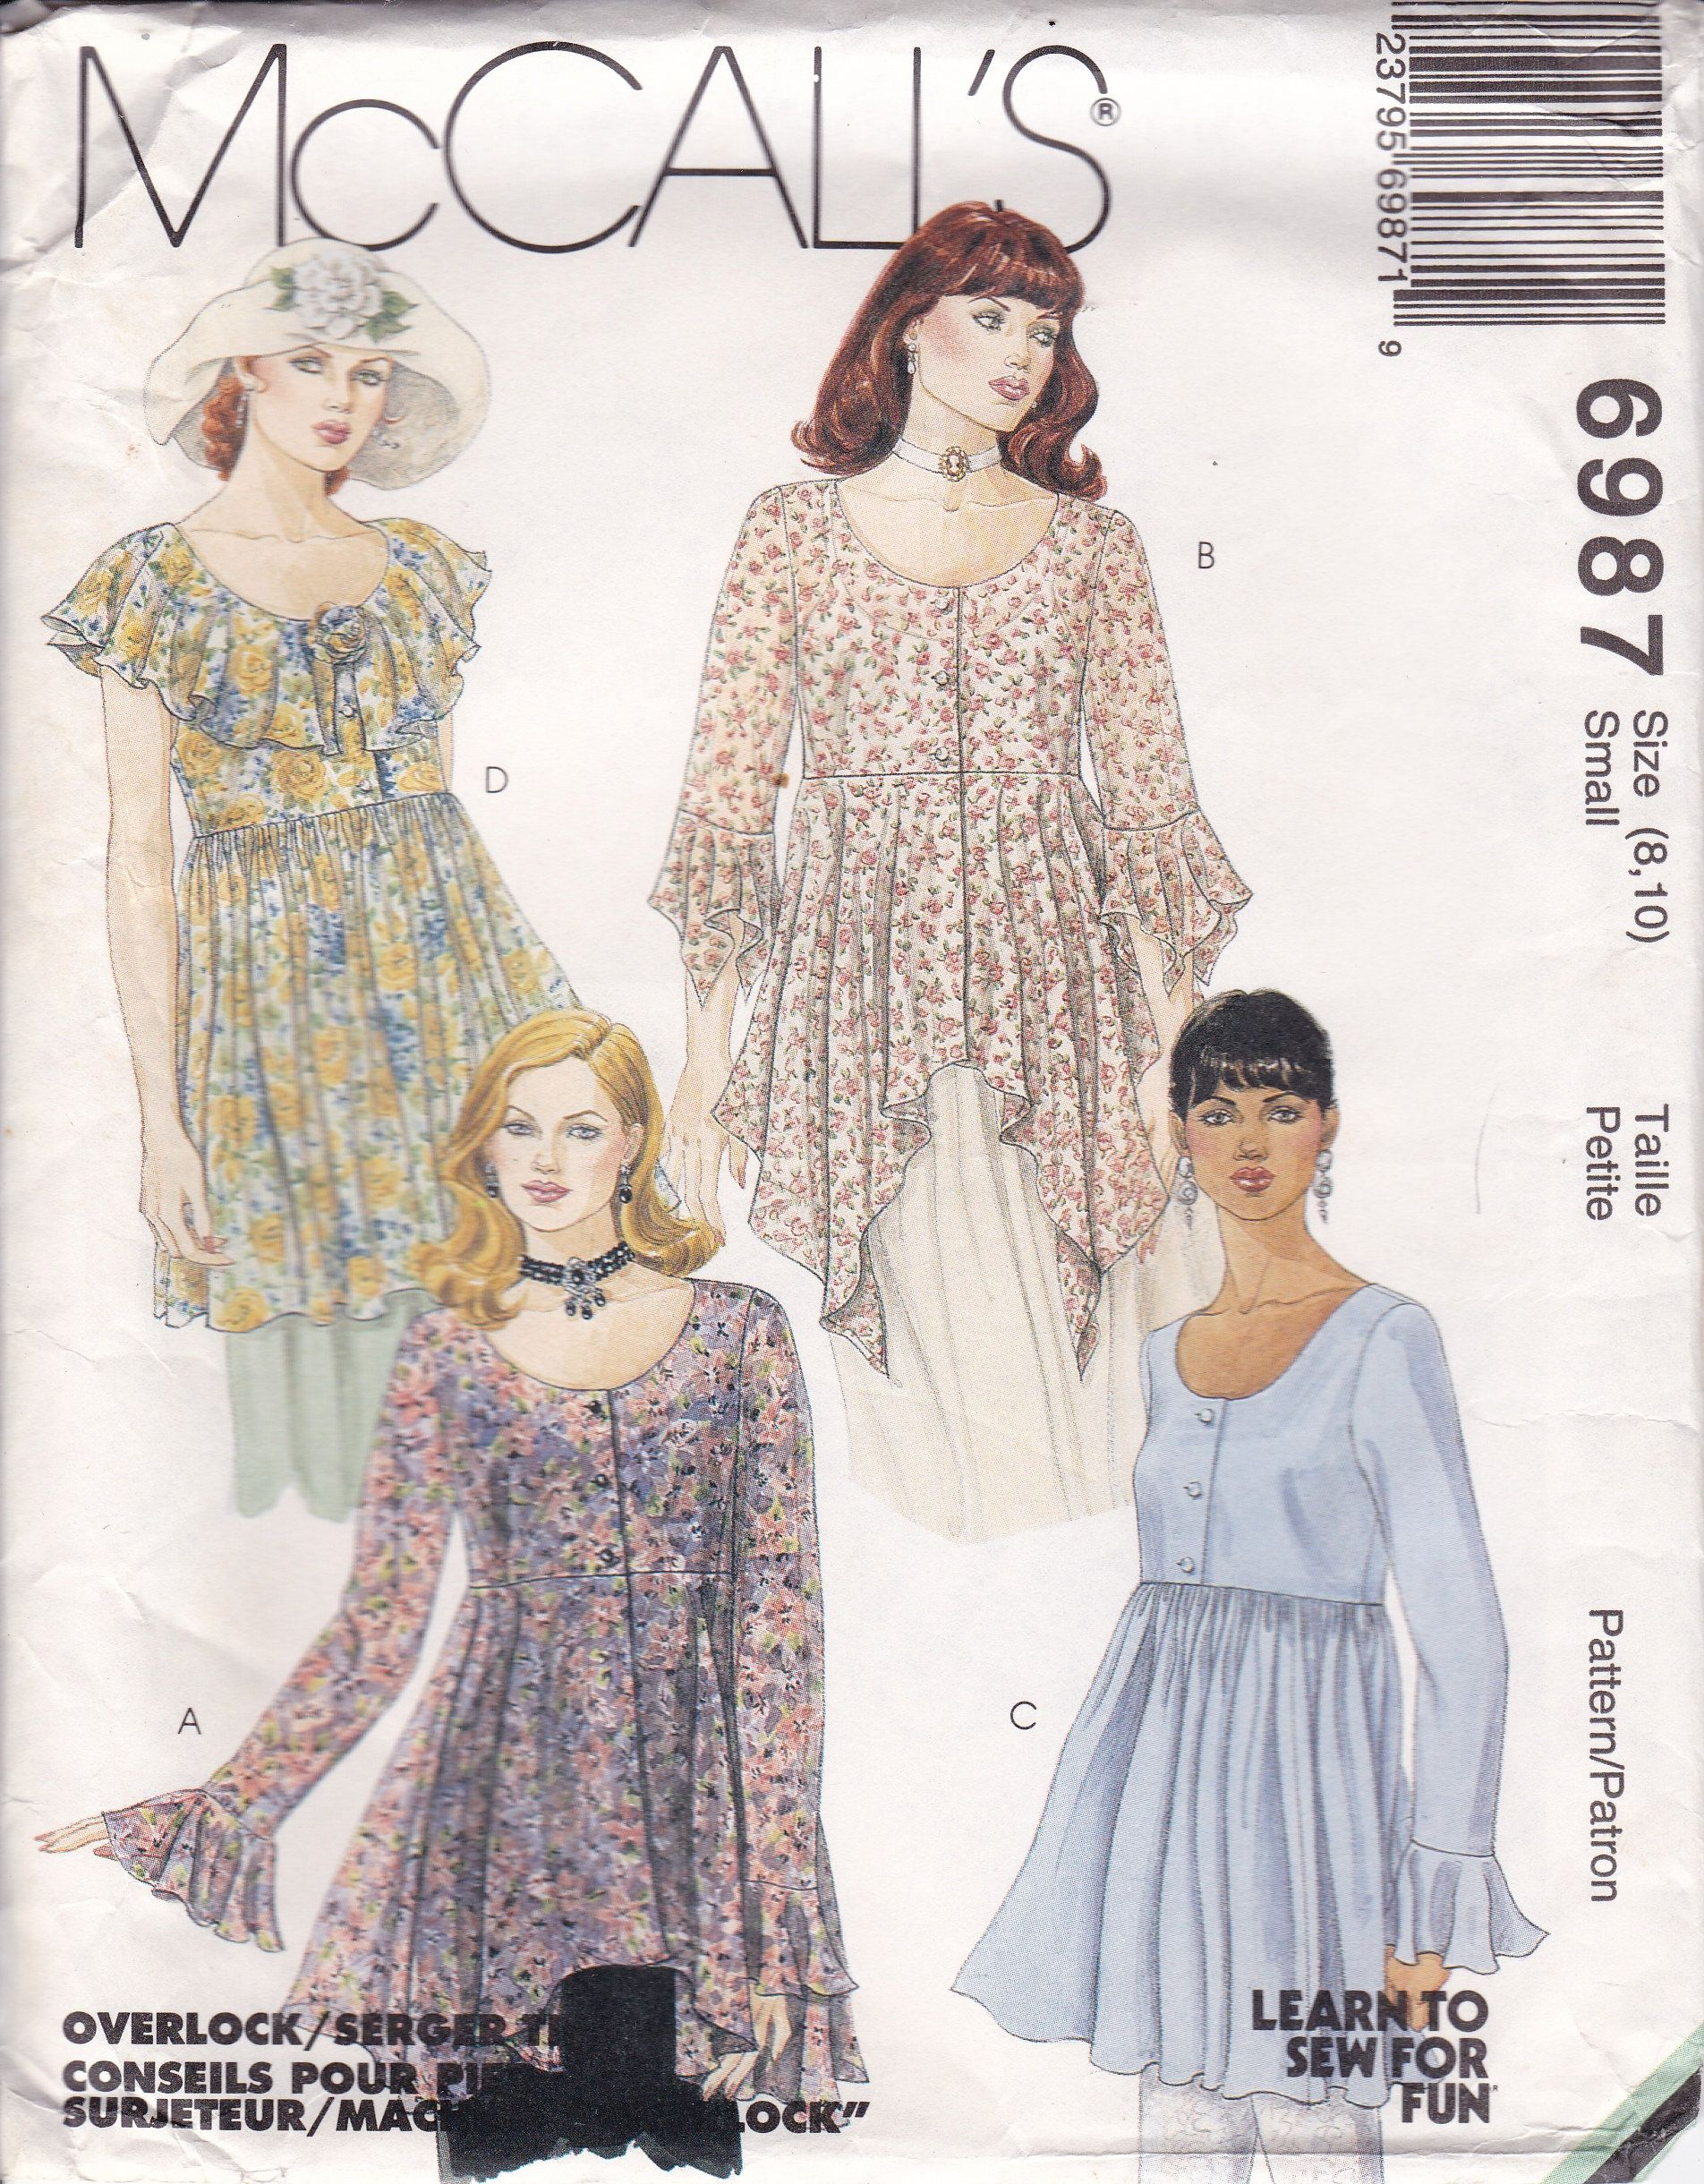 Mccalls Sewing Pattern For Loose Fitting Ruffle High Waist Blouse